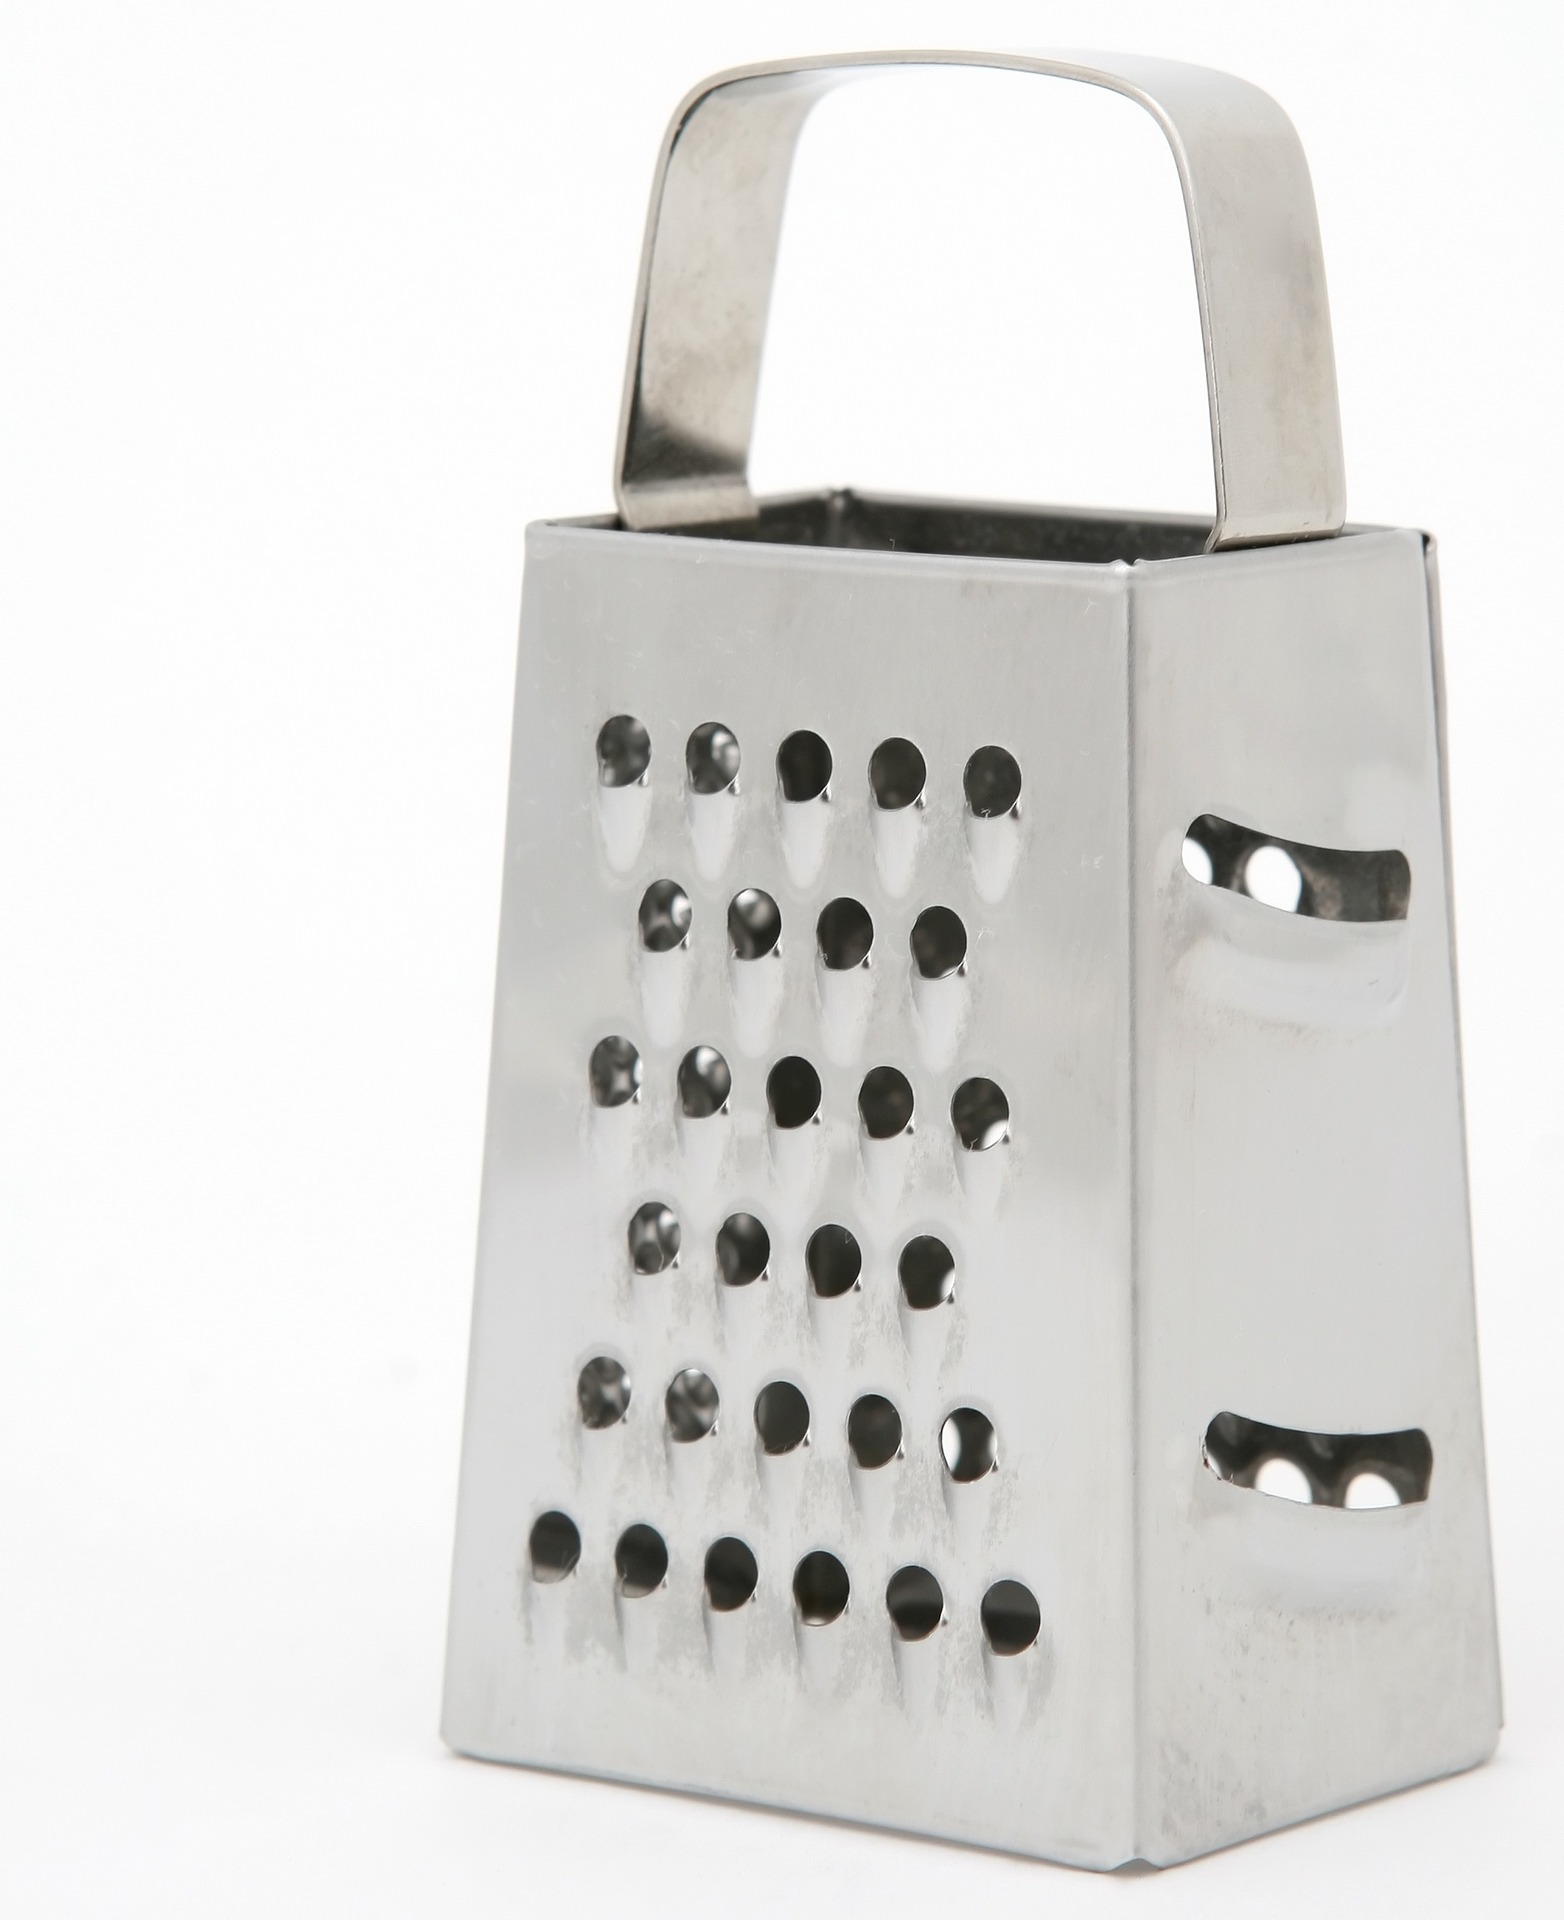 Cleaning cheese grater